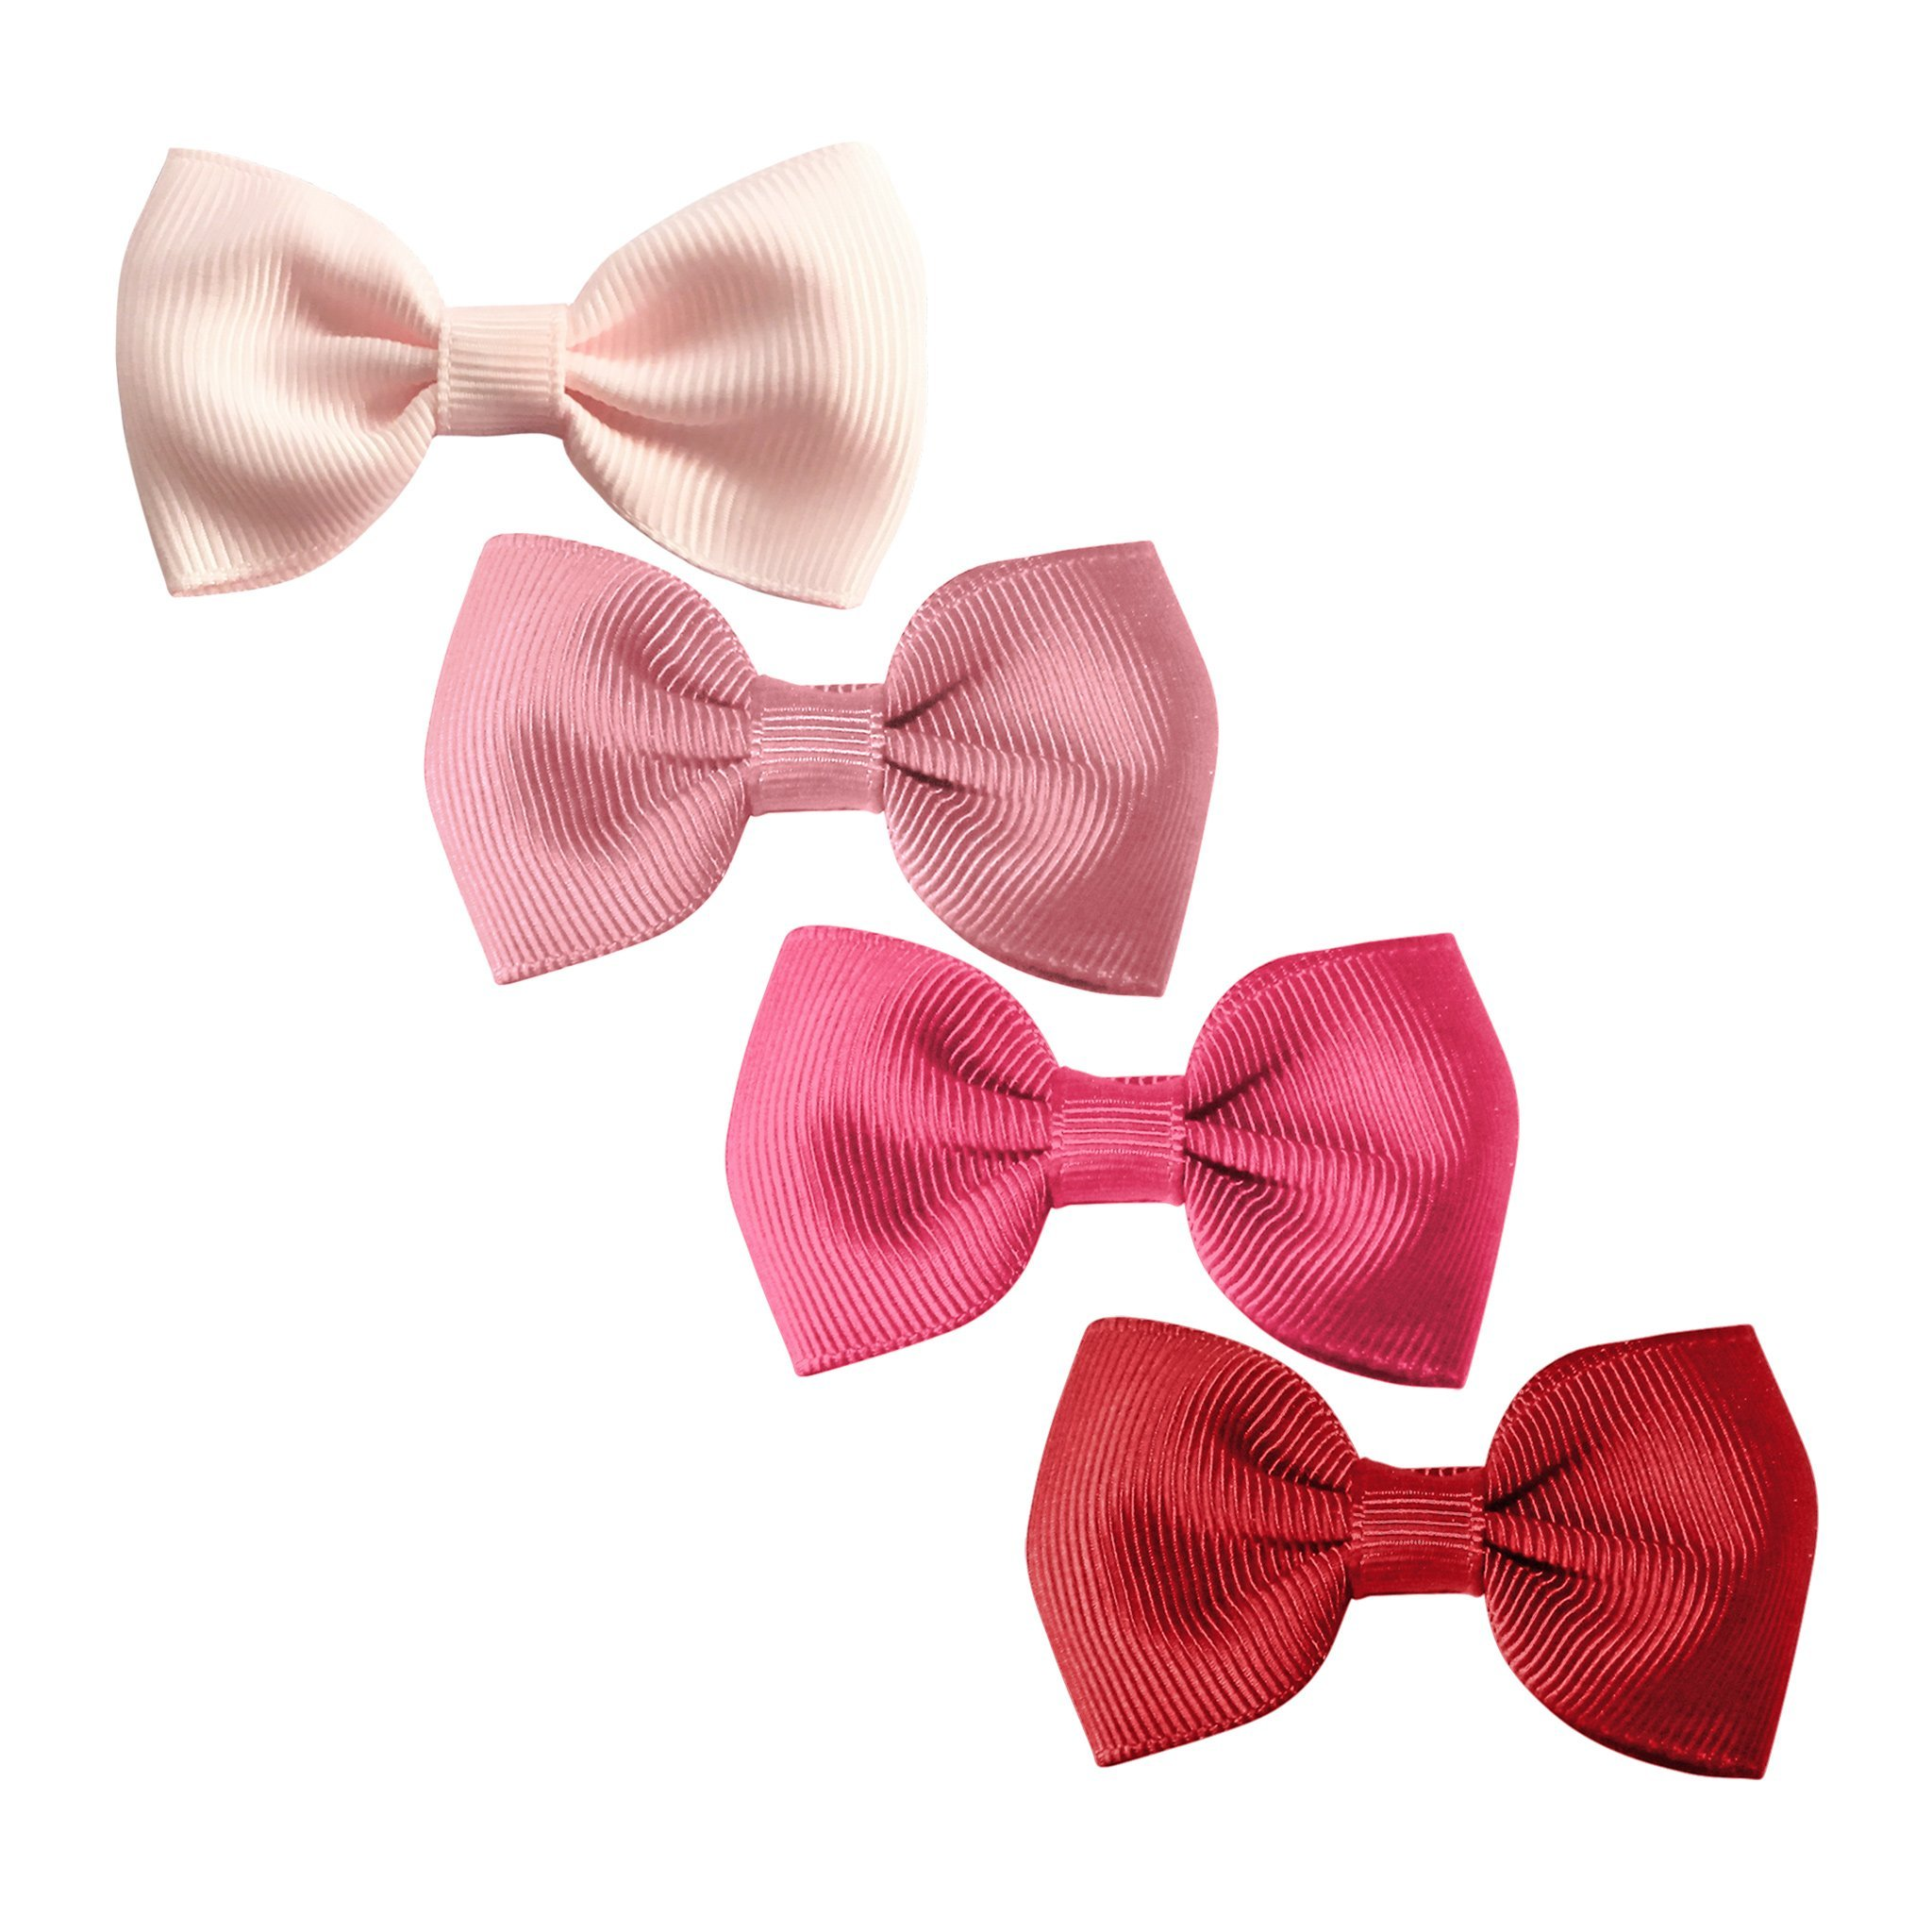 Image of Milledeux® Gift set - 4 Small bowtie bows - alligator clip - pink/red